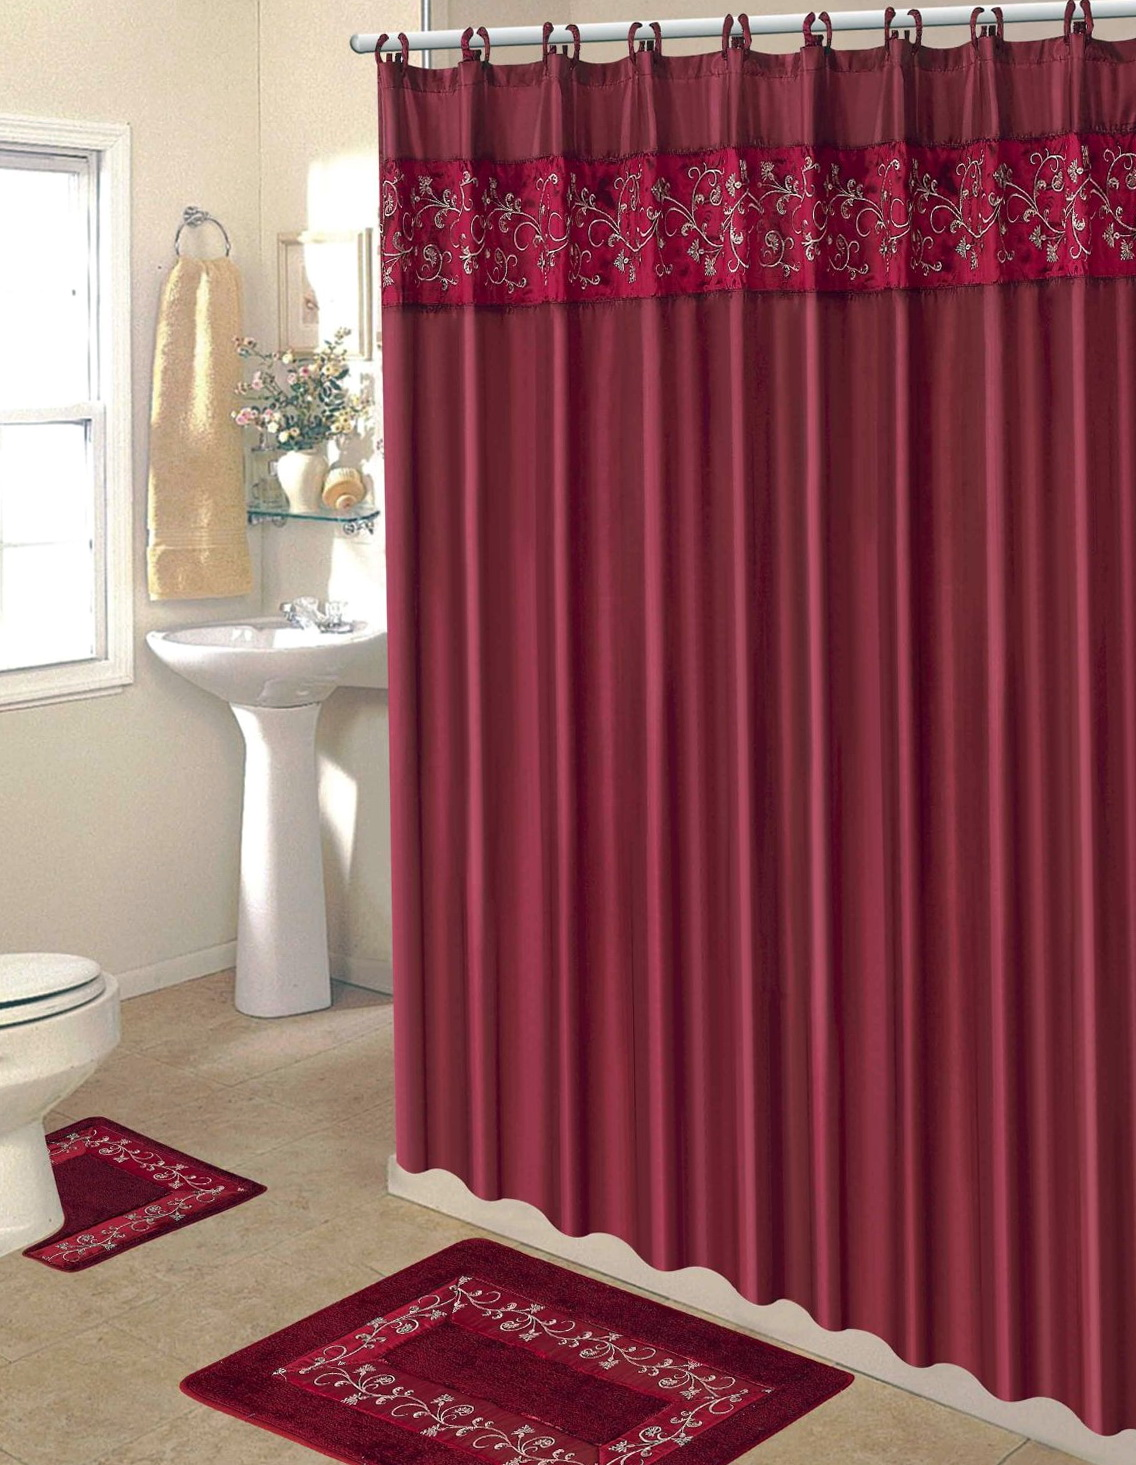 Bathroom Shower Curtains Sets